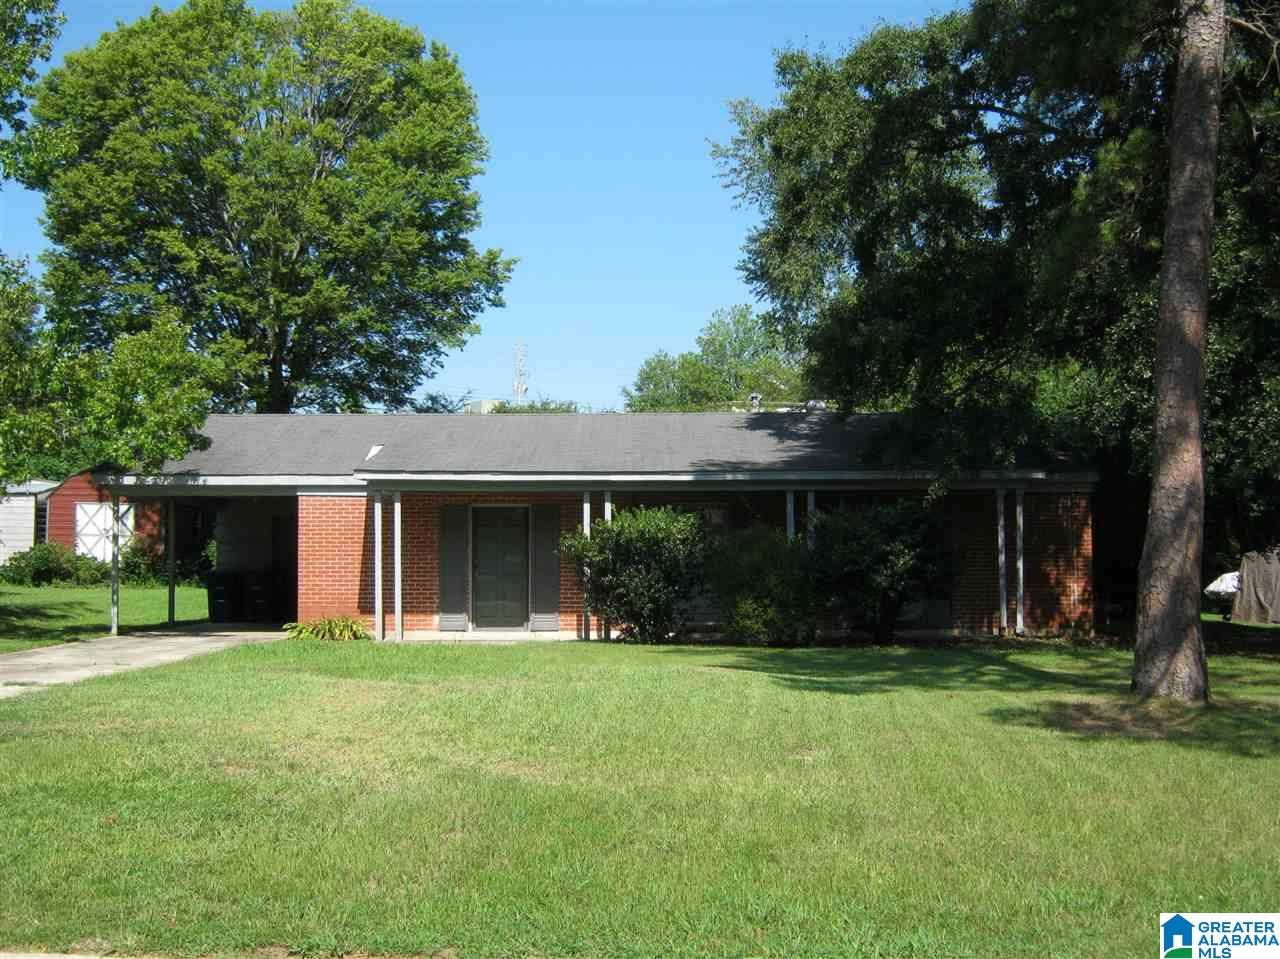 2108 WHITING RD, HOOVER, AL 35216